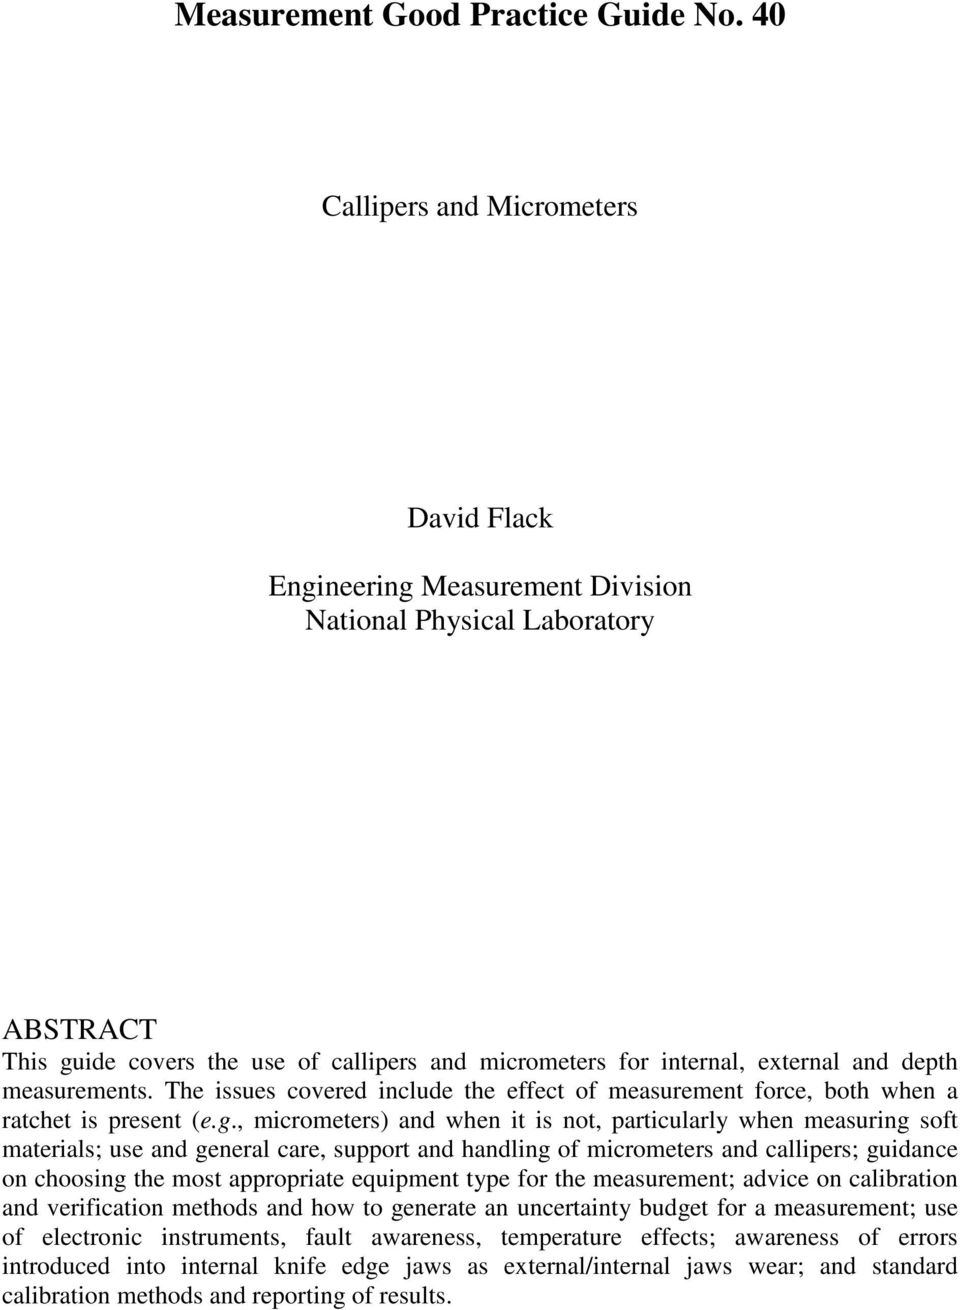 Good Practice Guide No  40  Callipers and micrometers  David Flack